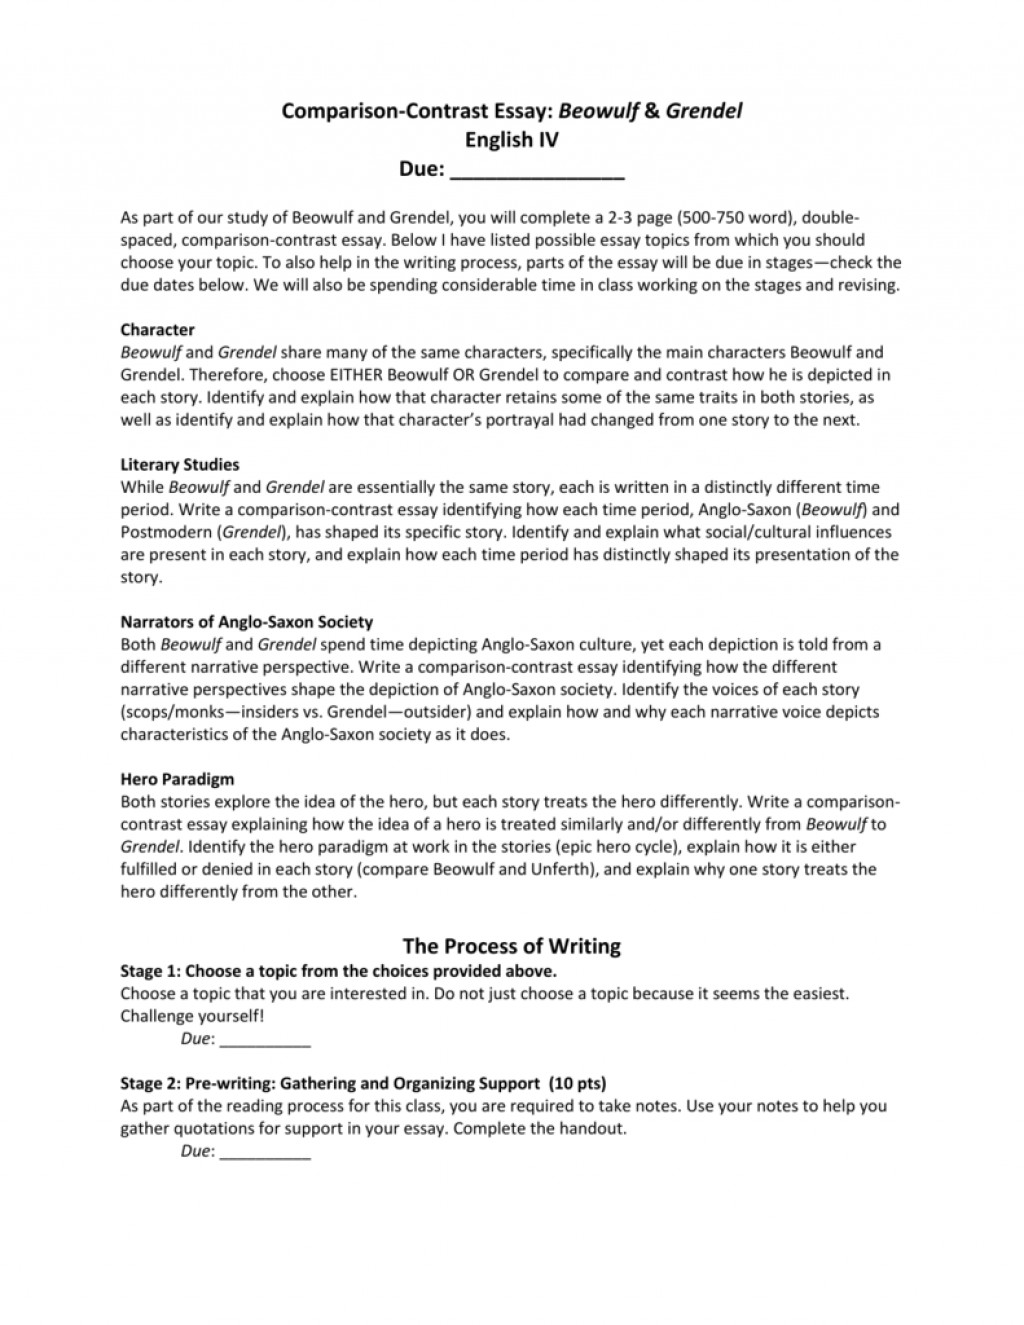 007 Essay Example What Is Compare And Contrast 008061732 1 Striking A Does Comparison/contrast Look Like Should Provide Good Topic Sentence For Large